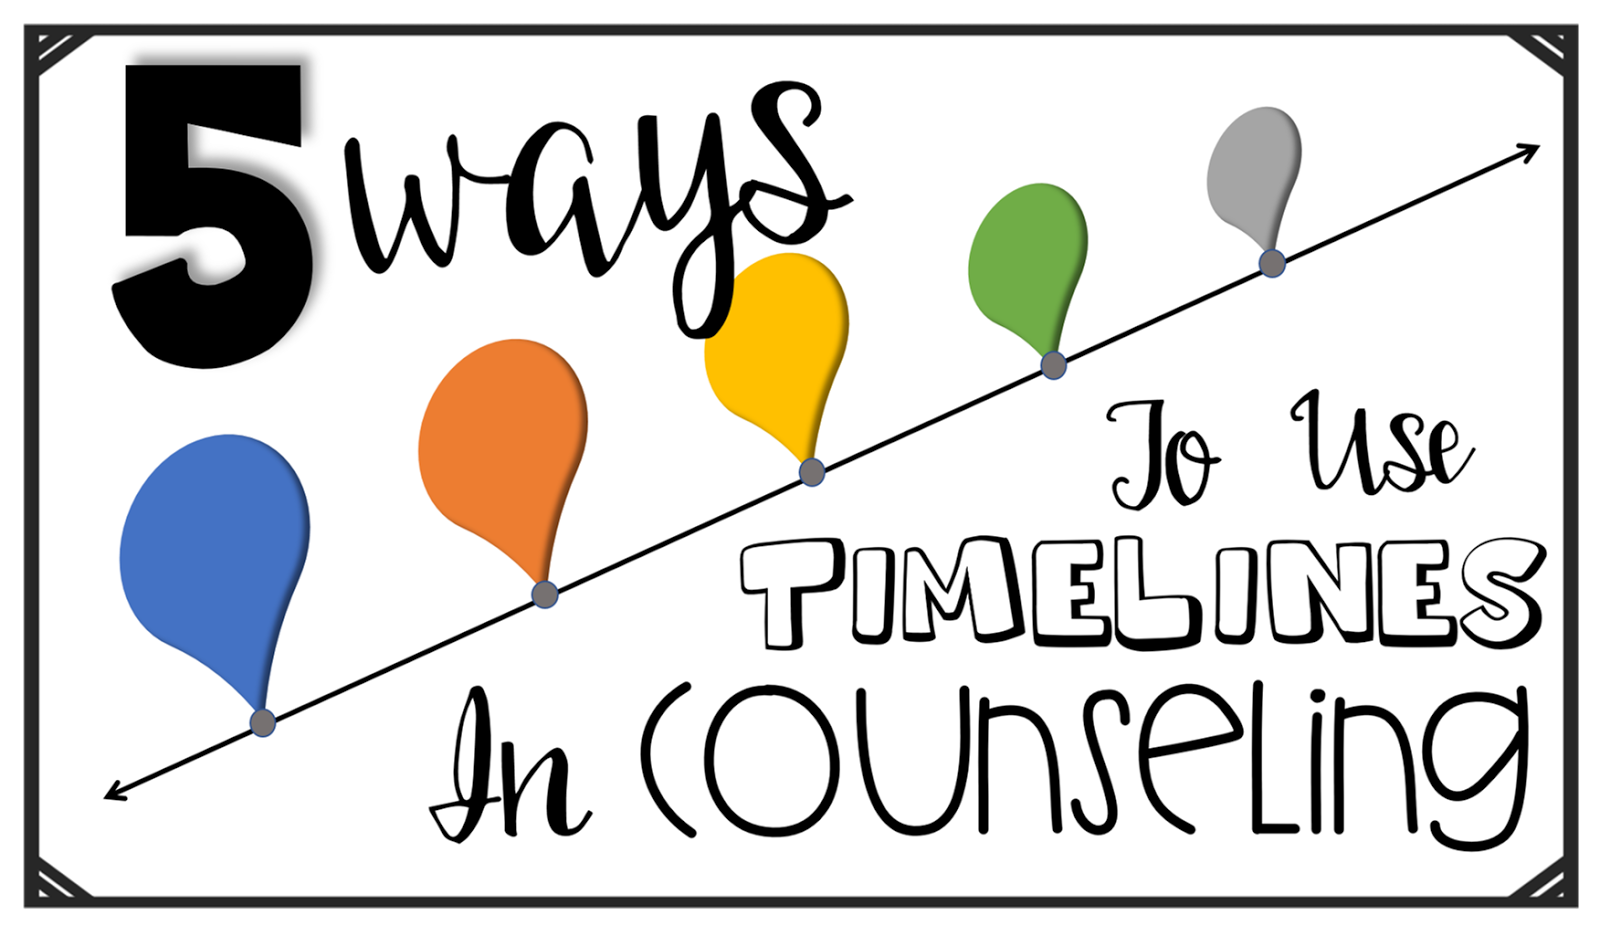 5 Ways To Use Timelines in Counseling - The Middle School